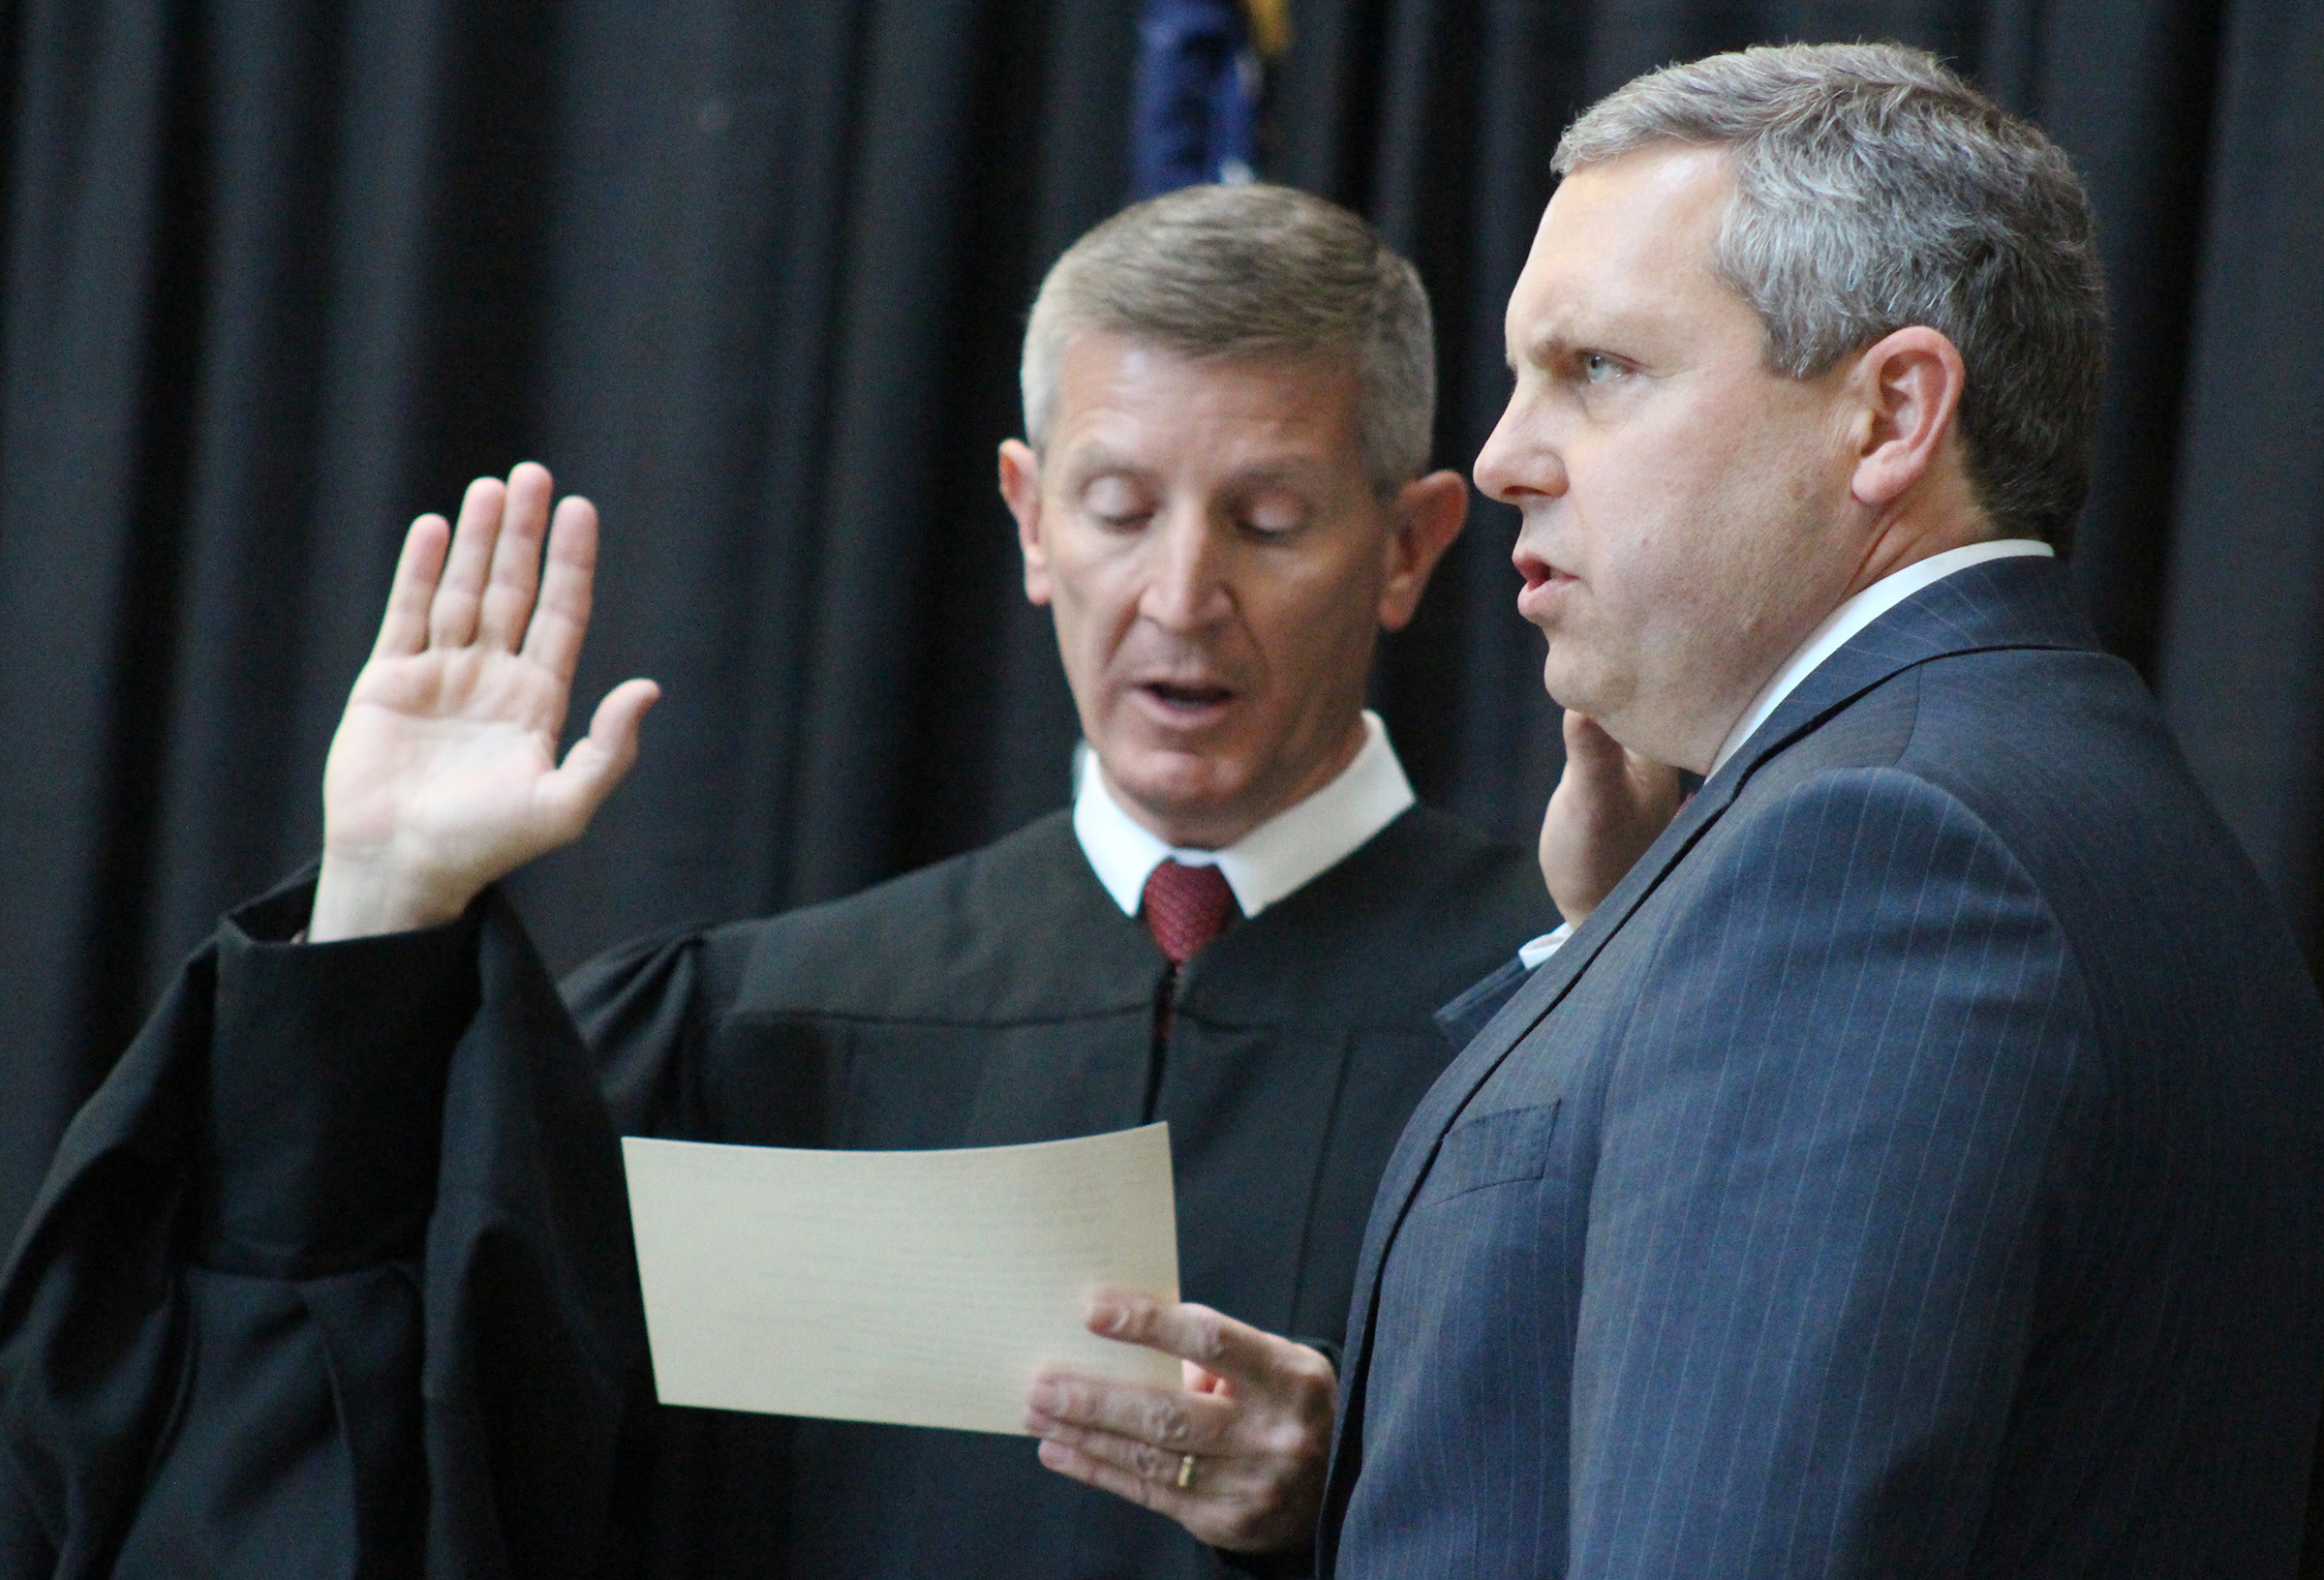 Brian C. Buescher, right, takes the oath of office, administered by Eighth Circuit Appeals Court Judge L. Steven Grasz, left, during his investiture ceremony at the Hruska Federal Courthouse on Friday, Nov. 15, 2019. (Photo by Scott Stewart)